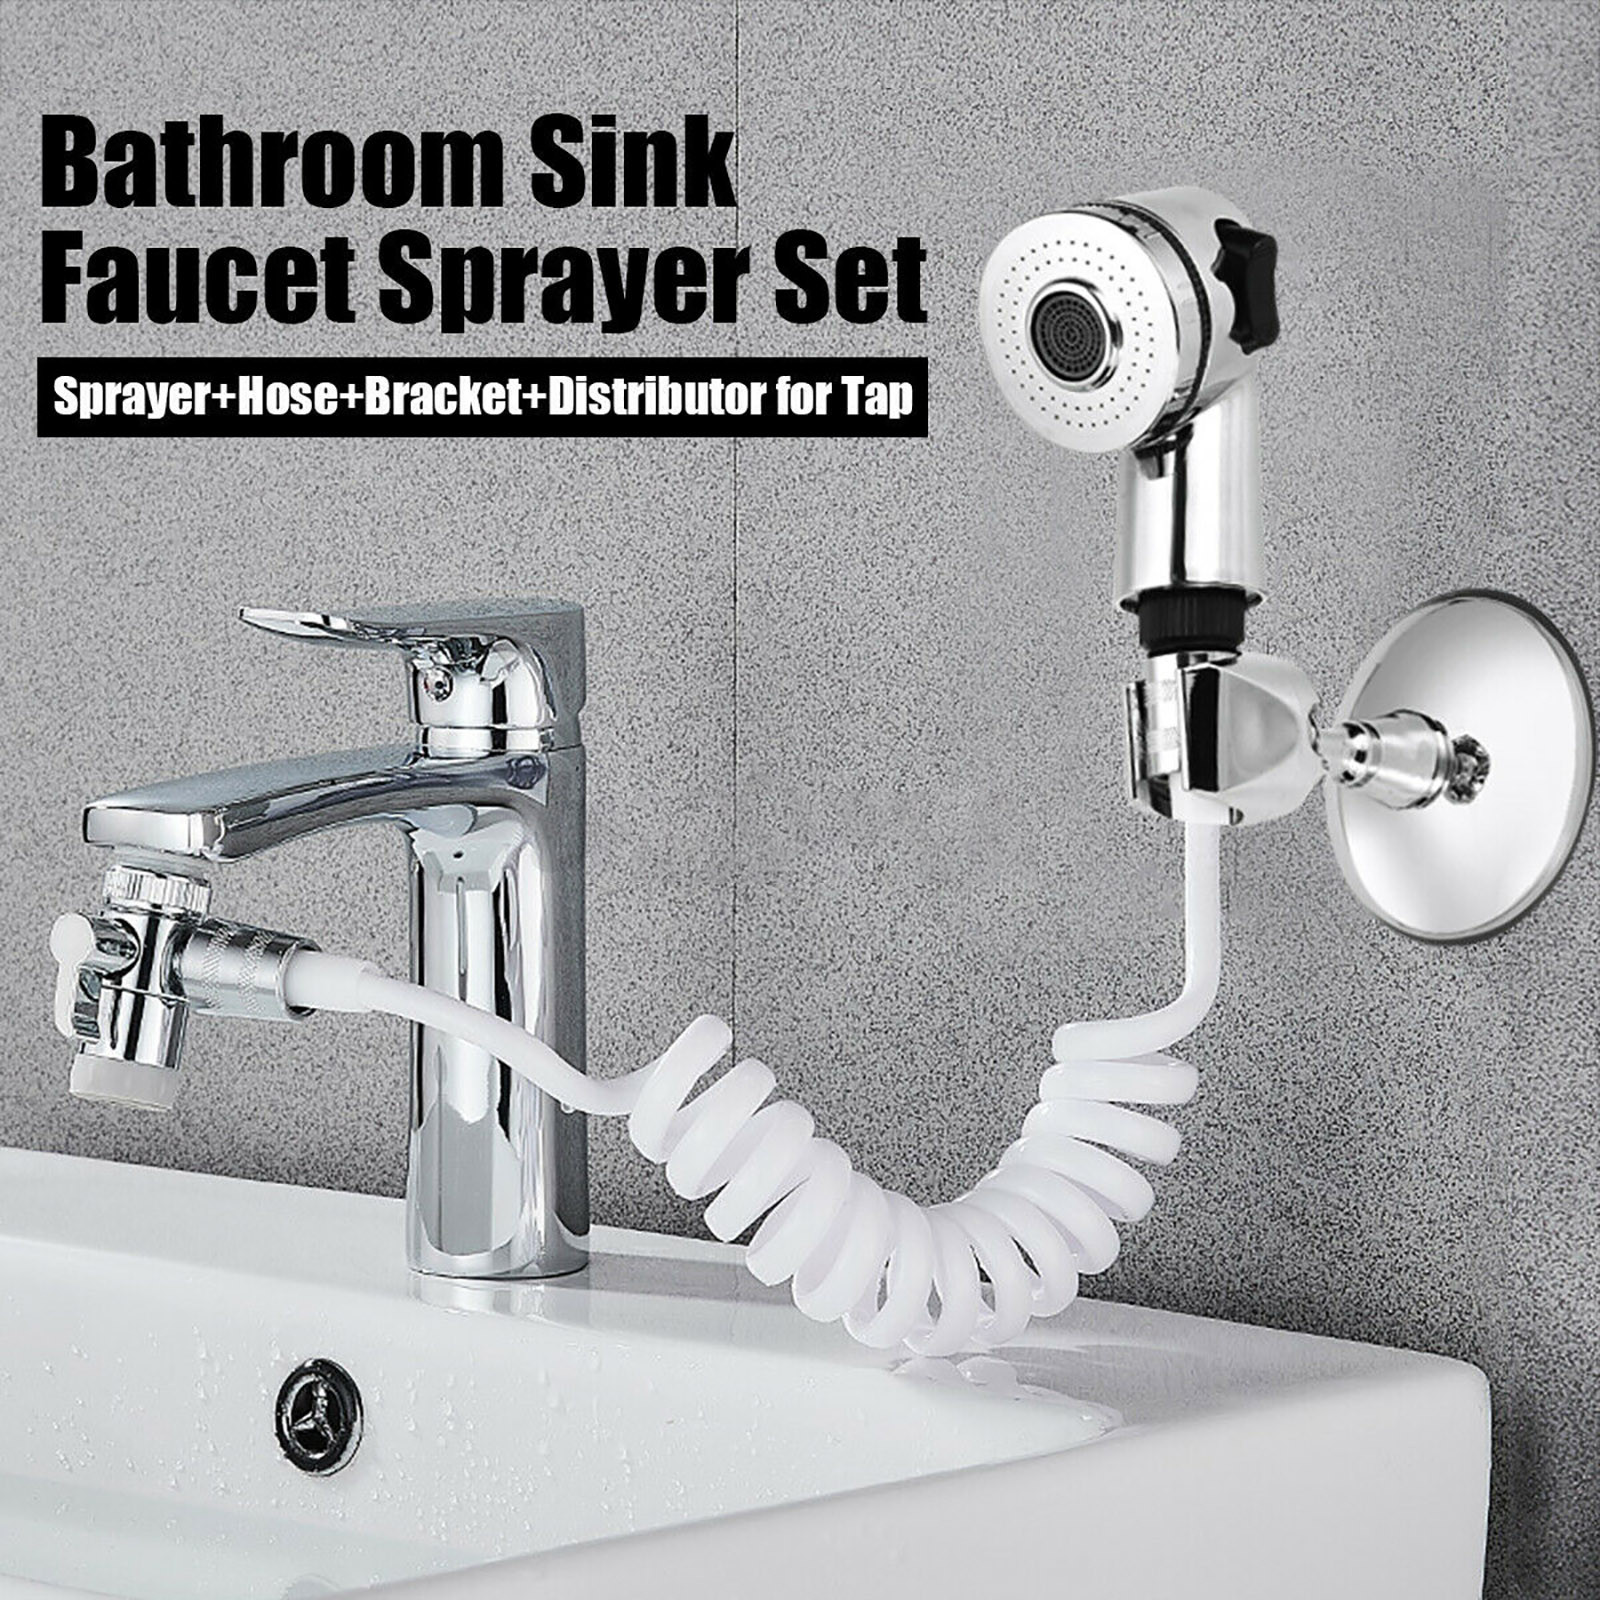 Sink Tap Faucet Kitchens Shampoo Shower Heads Bathroom Spray Drain Filter Hose For Household Bathroom Accessories Sink Tap Faucet Kitchens Shampoo Shower Heads Bathroom Spray Drain Filter Hose For Household Bathroom Accessories